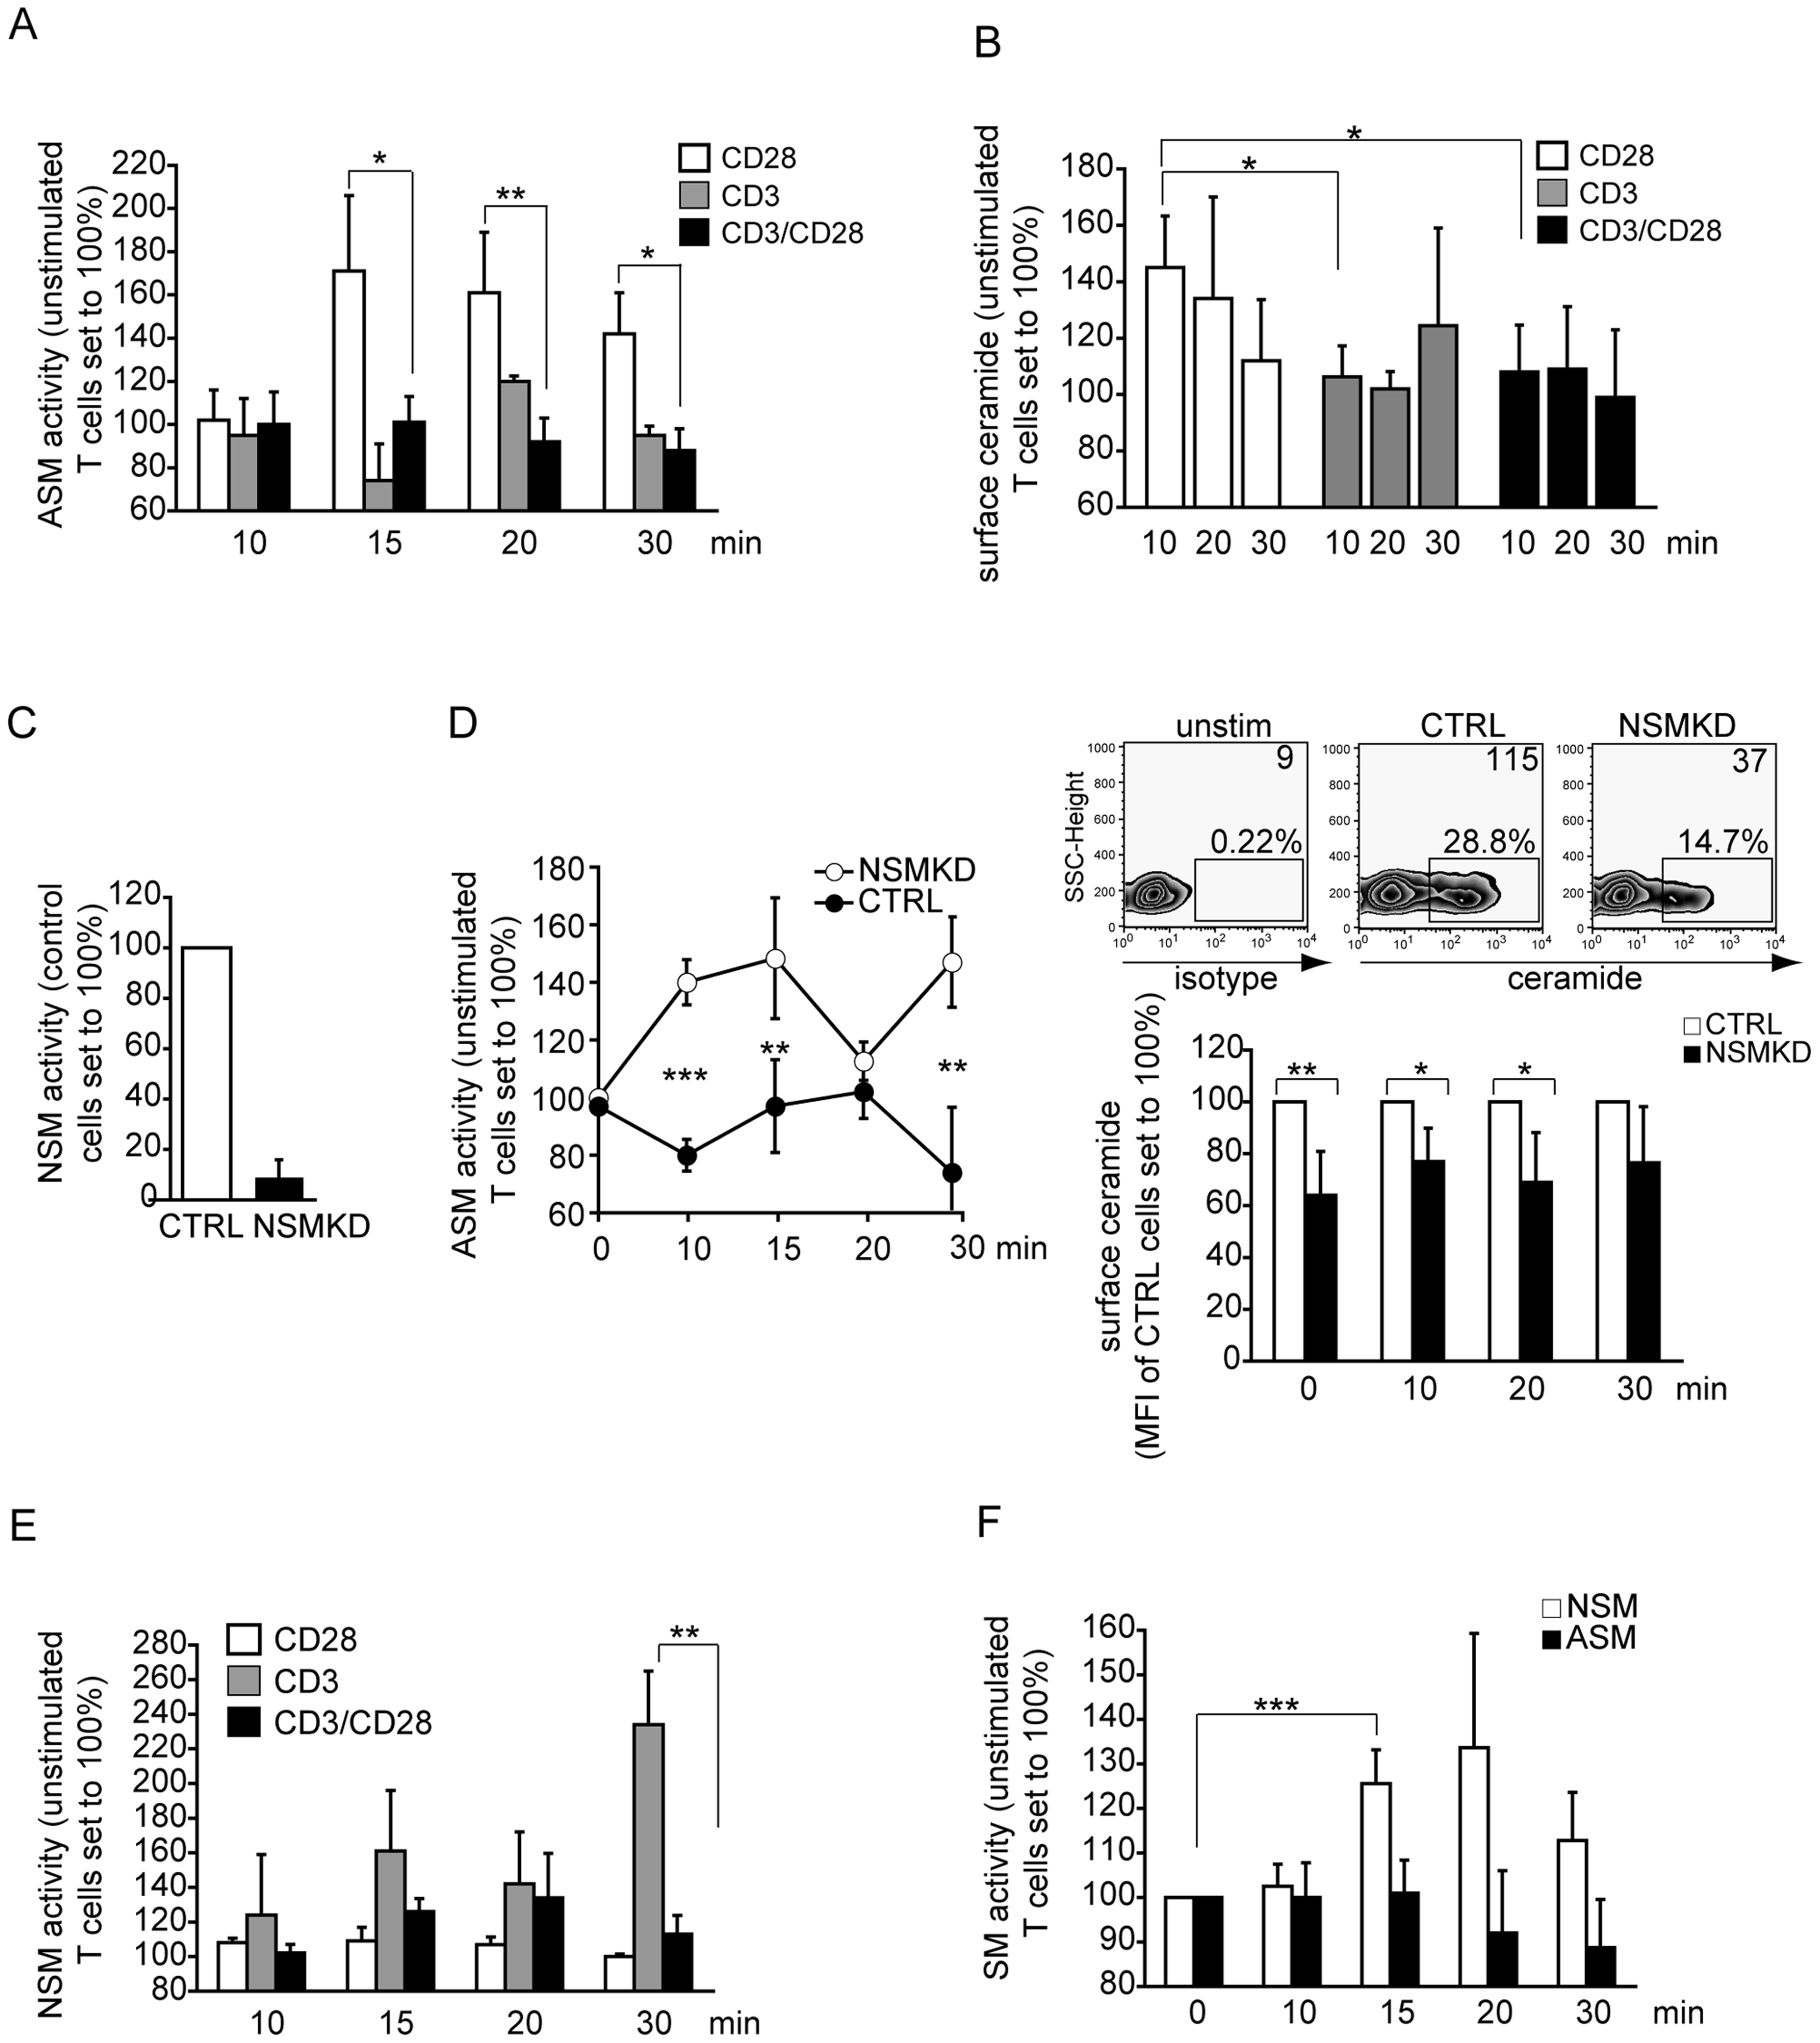 ASM activation is ablated, while NSM activity is induced early in co-stimulated primary human T cells.